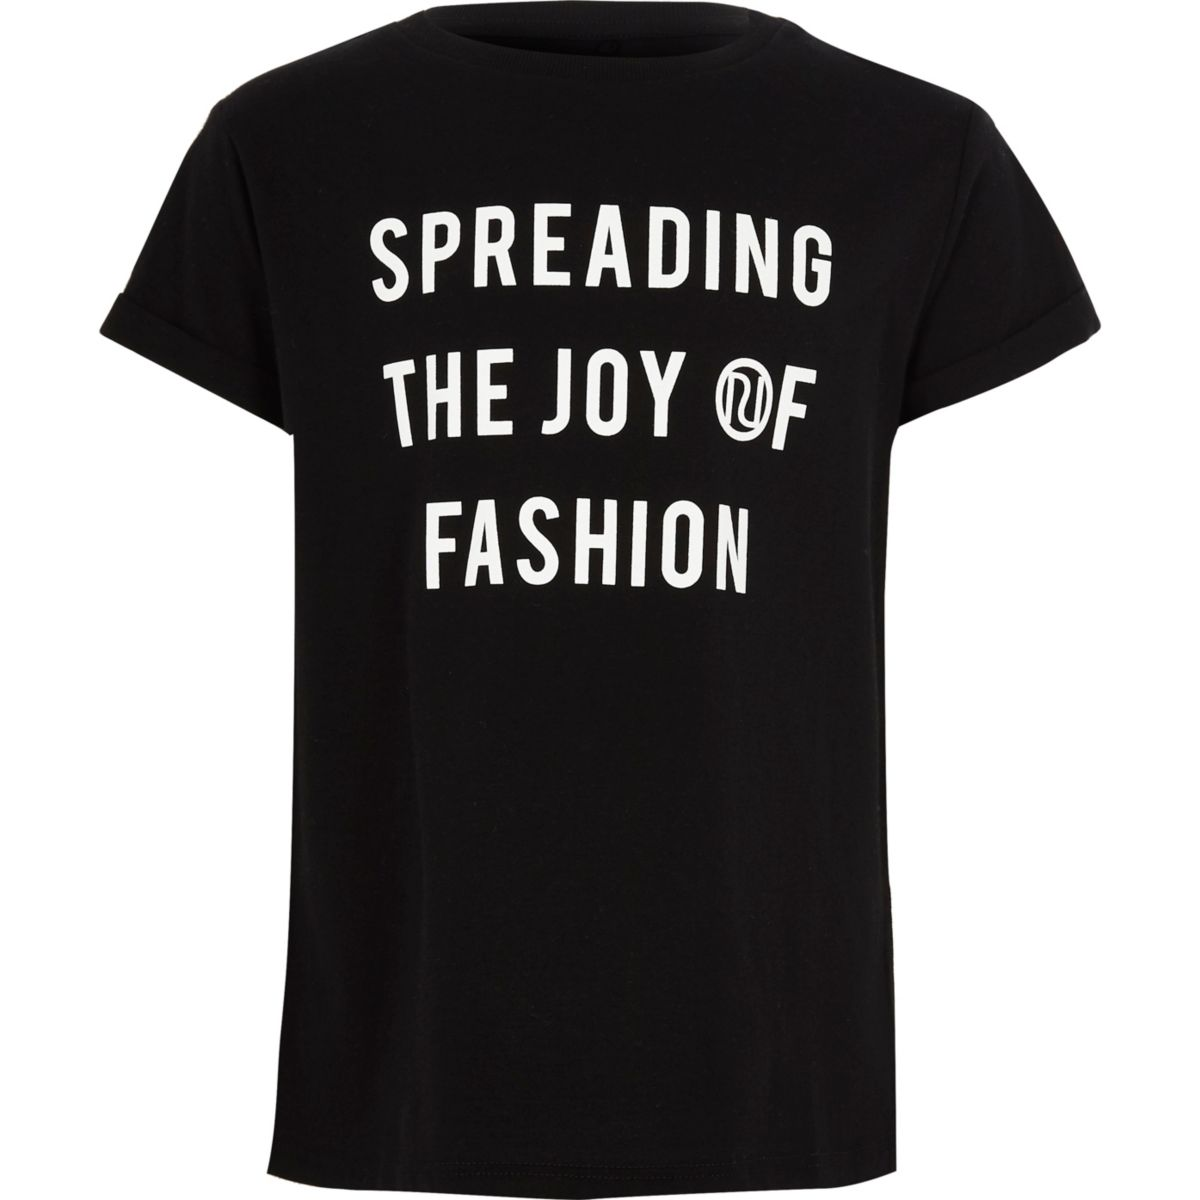 T-shirt imprimé « joy of fashion » noir pour fille